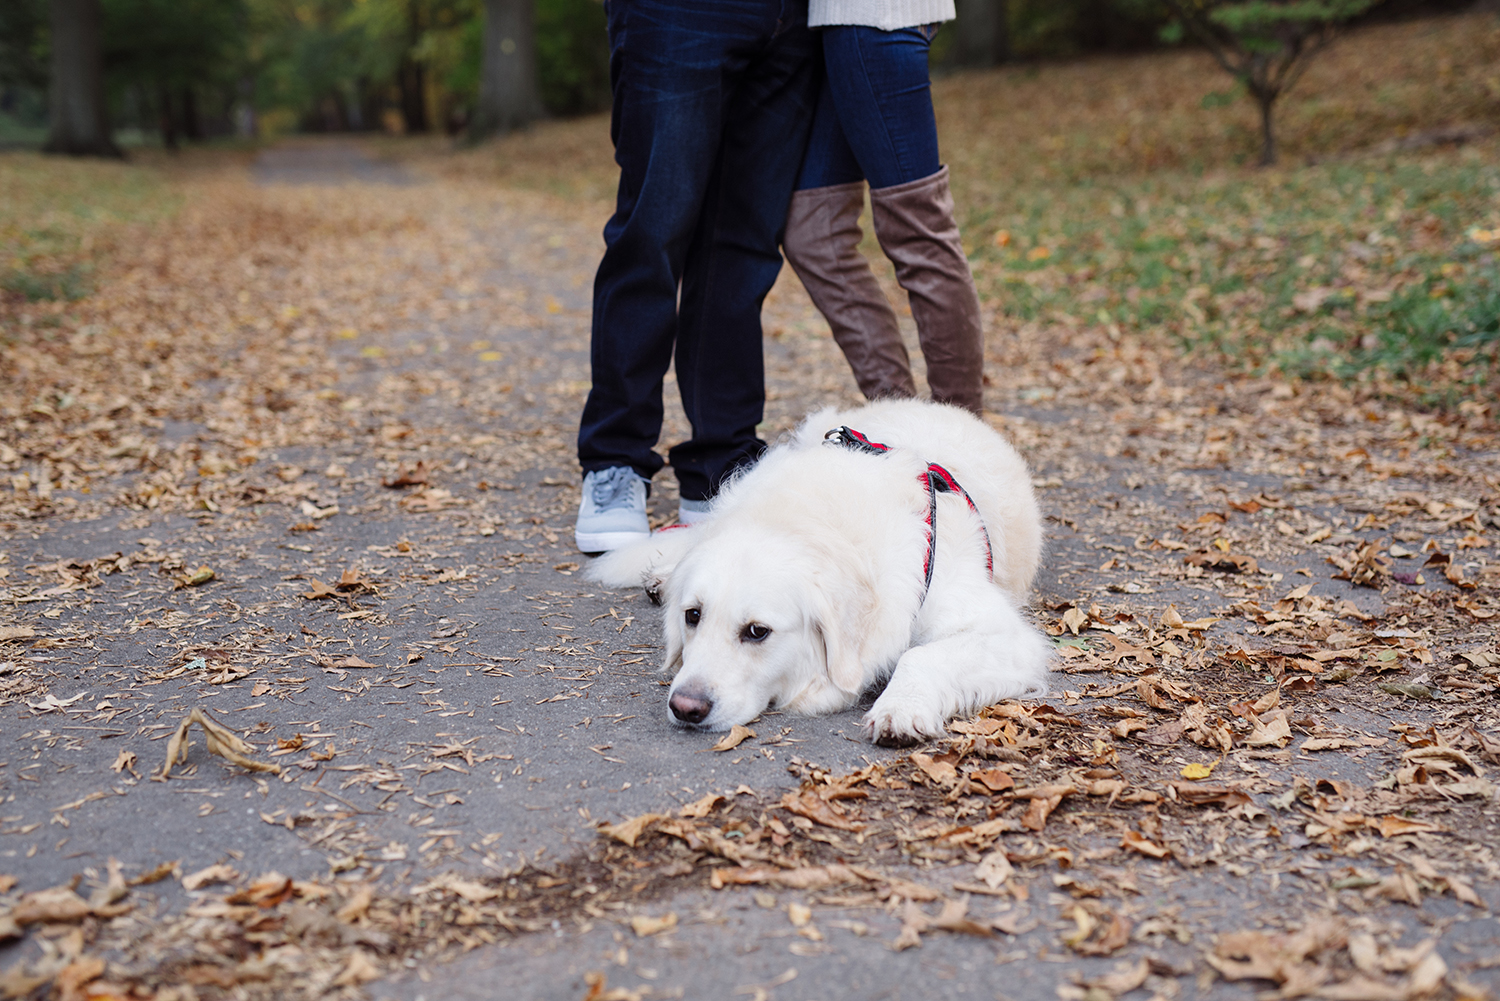 Melissa+Jeff- Local Park Engagement Session with Dog- Booth Park Nutley- New Jersey-Olivia Christina Photo-4.jpg